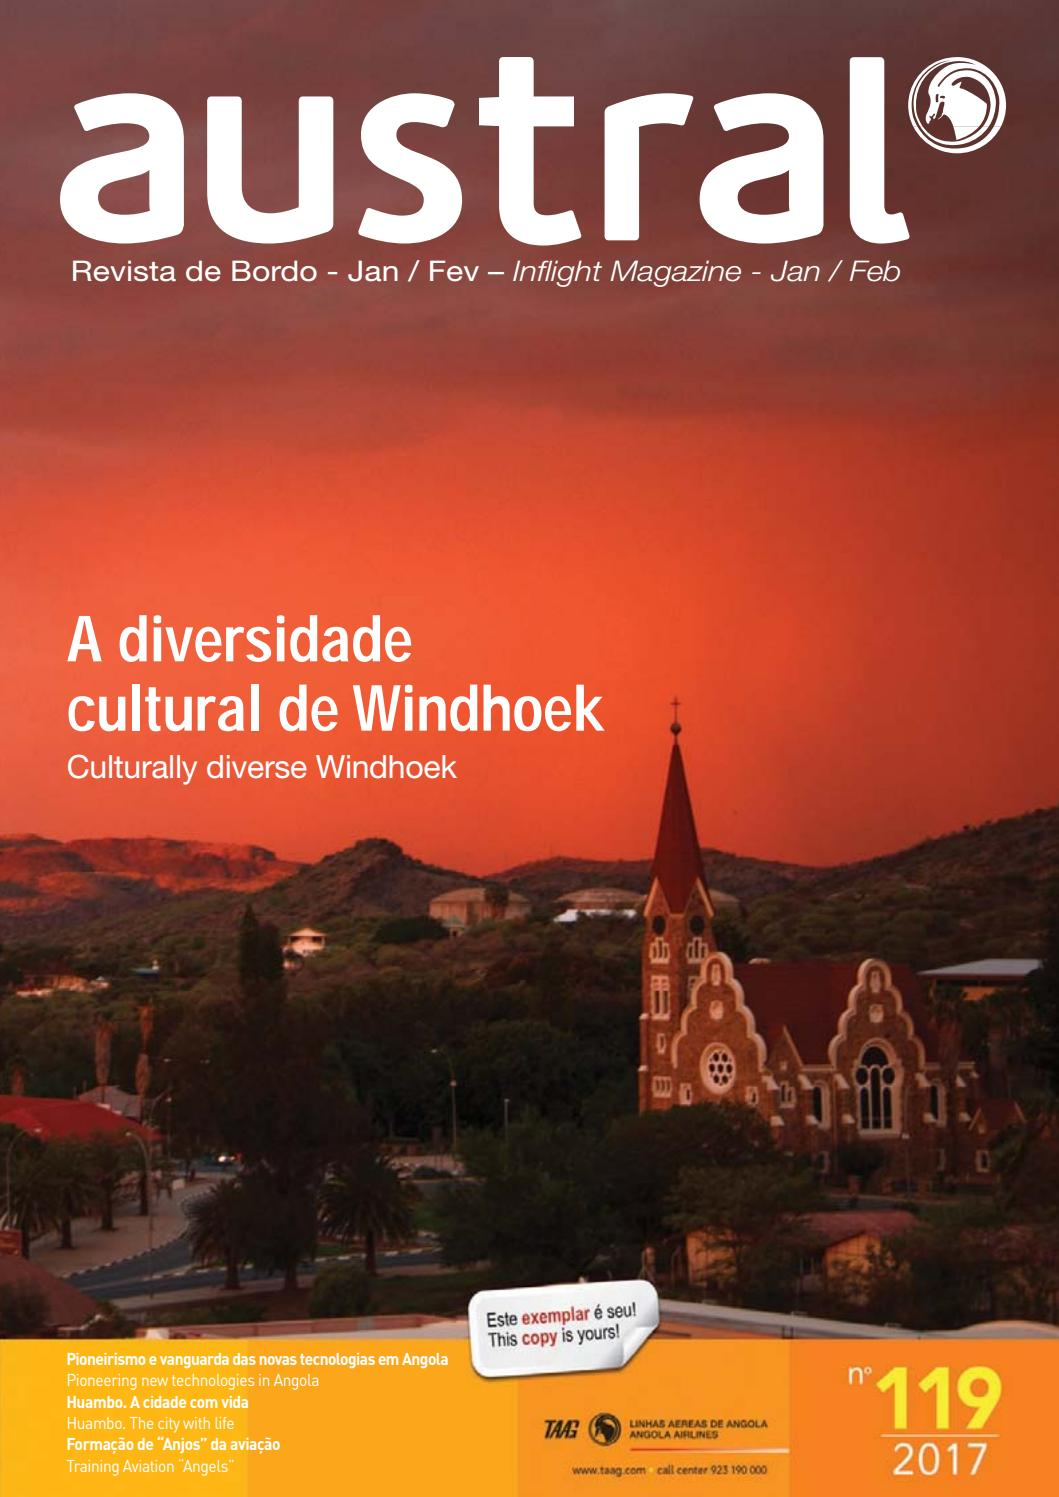 Revista austral 119 2017 by taag linhas areas de angola issuu fandeluxe Images